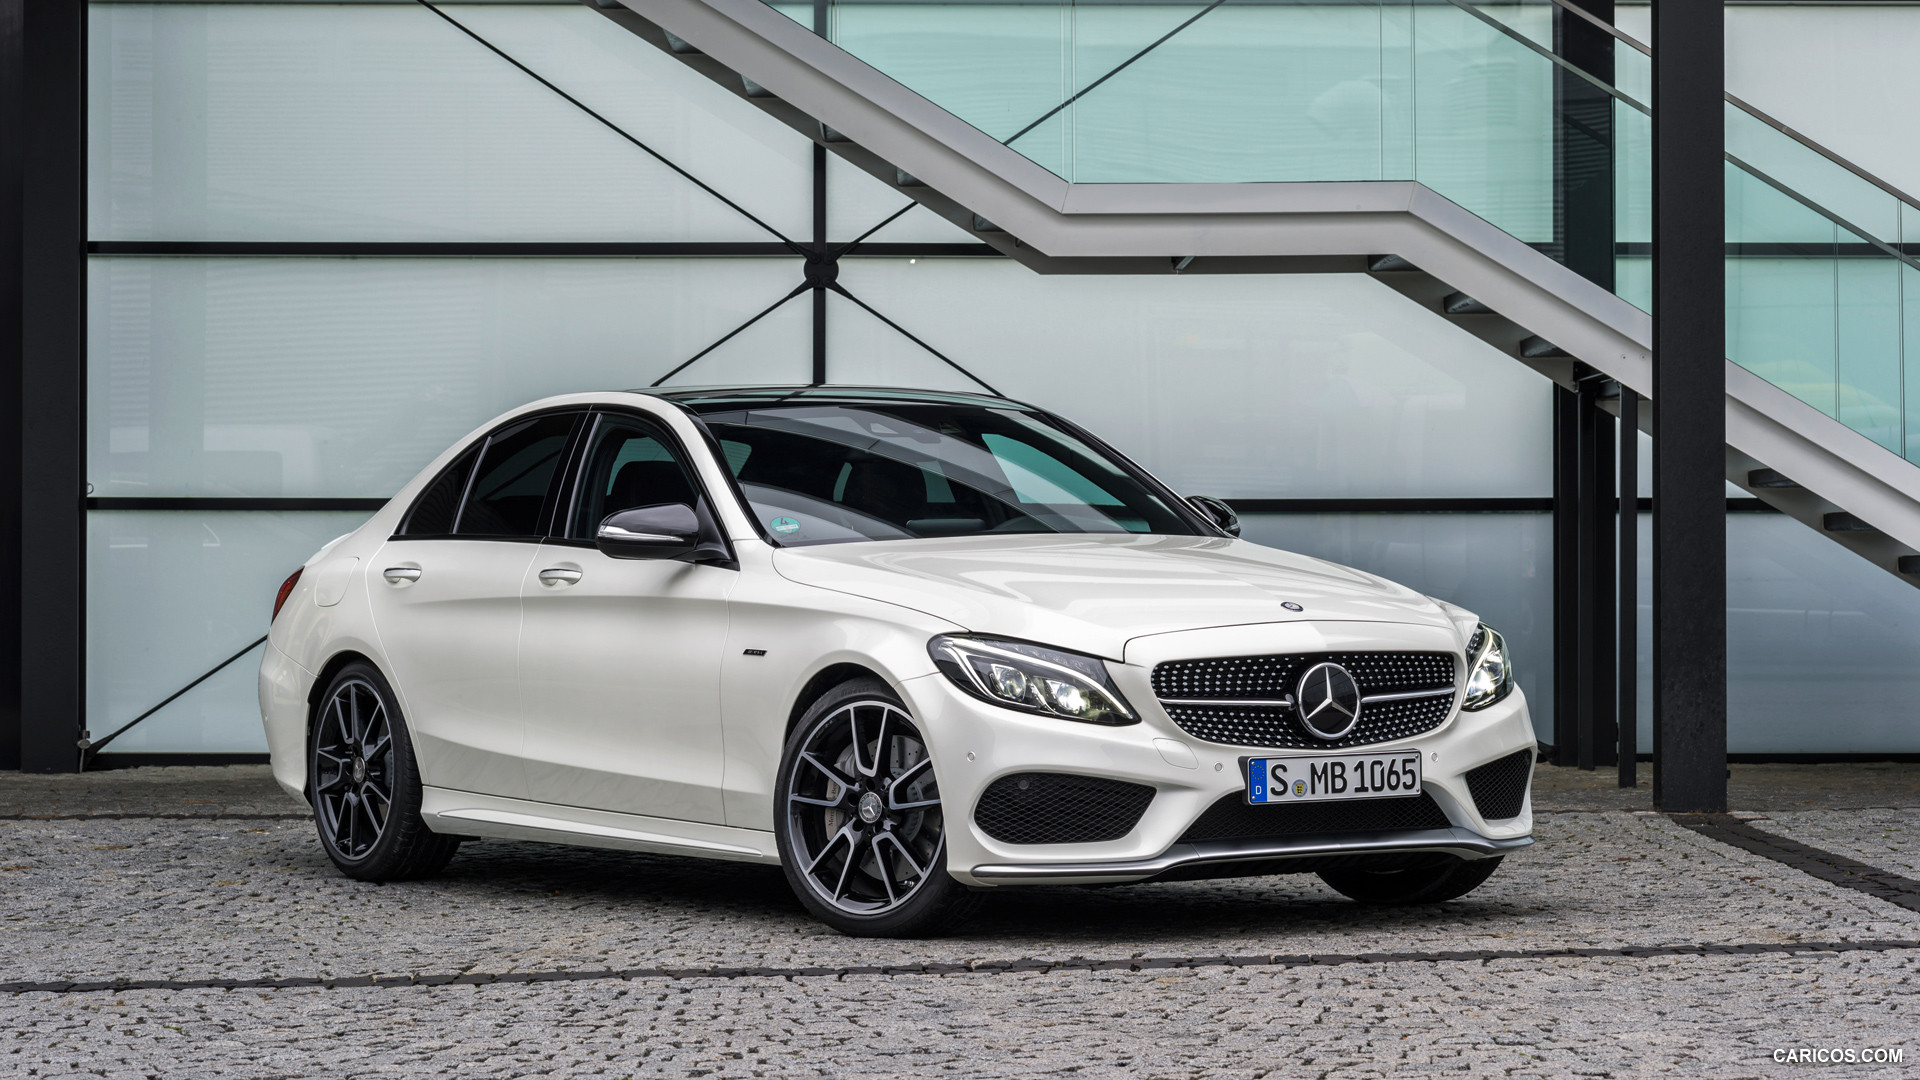 Mercedes Benz C450 AMG picture